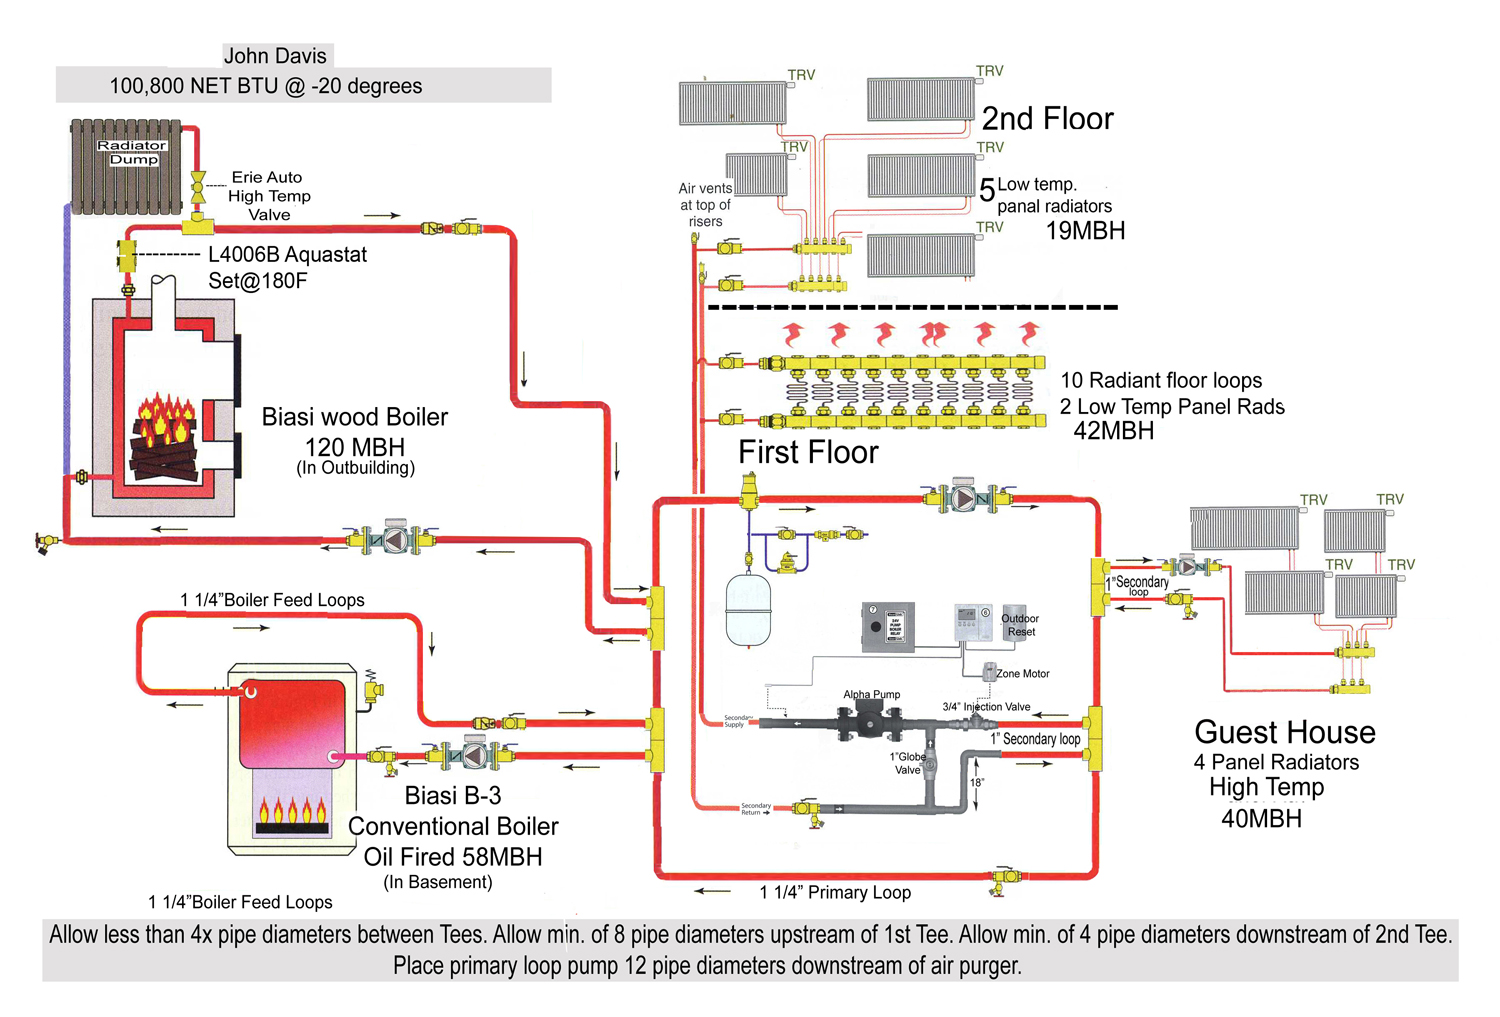 Wiring Diagrams Hvac Controls System Schematic 2019 For Control Systems Images Gallery Heating Zone Valve Diagram Get Free Image About